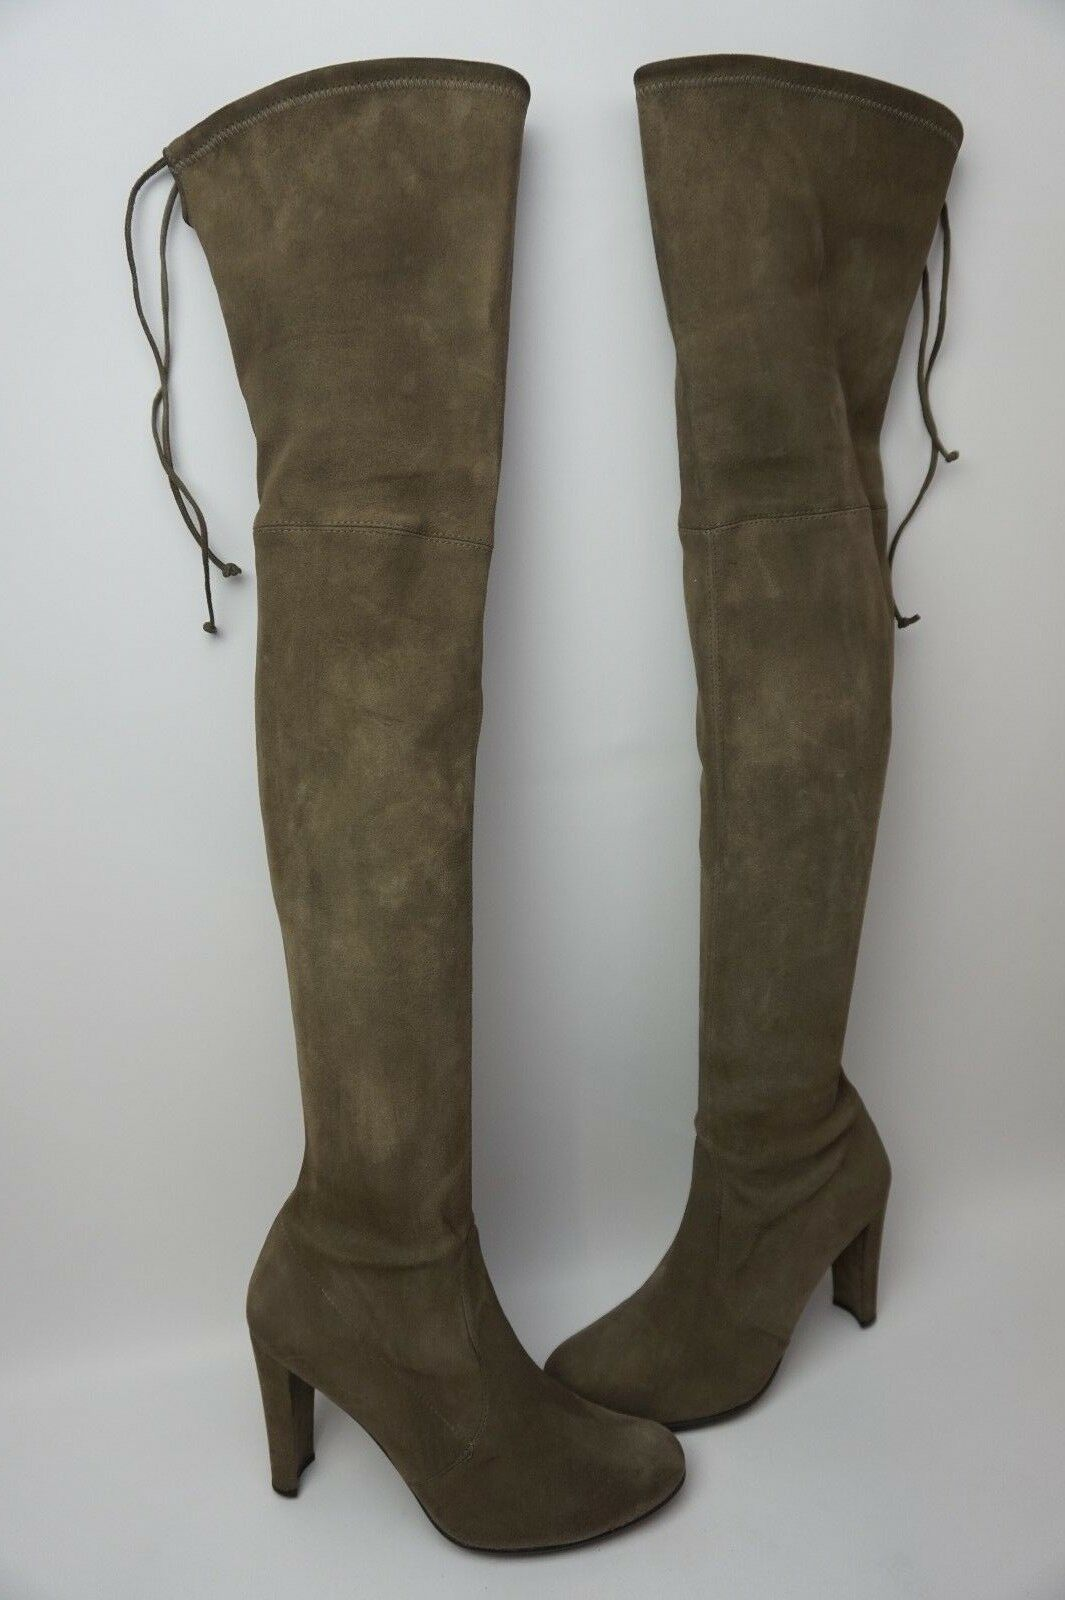 Stuart Weitzman Highland Over the Knee Praline Grey Suede Boots Size 9.5 M